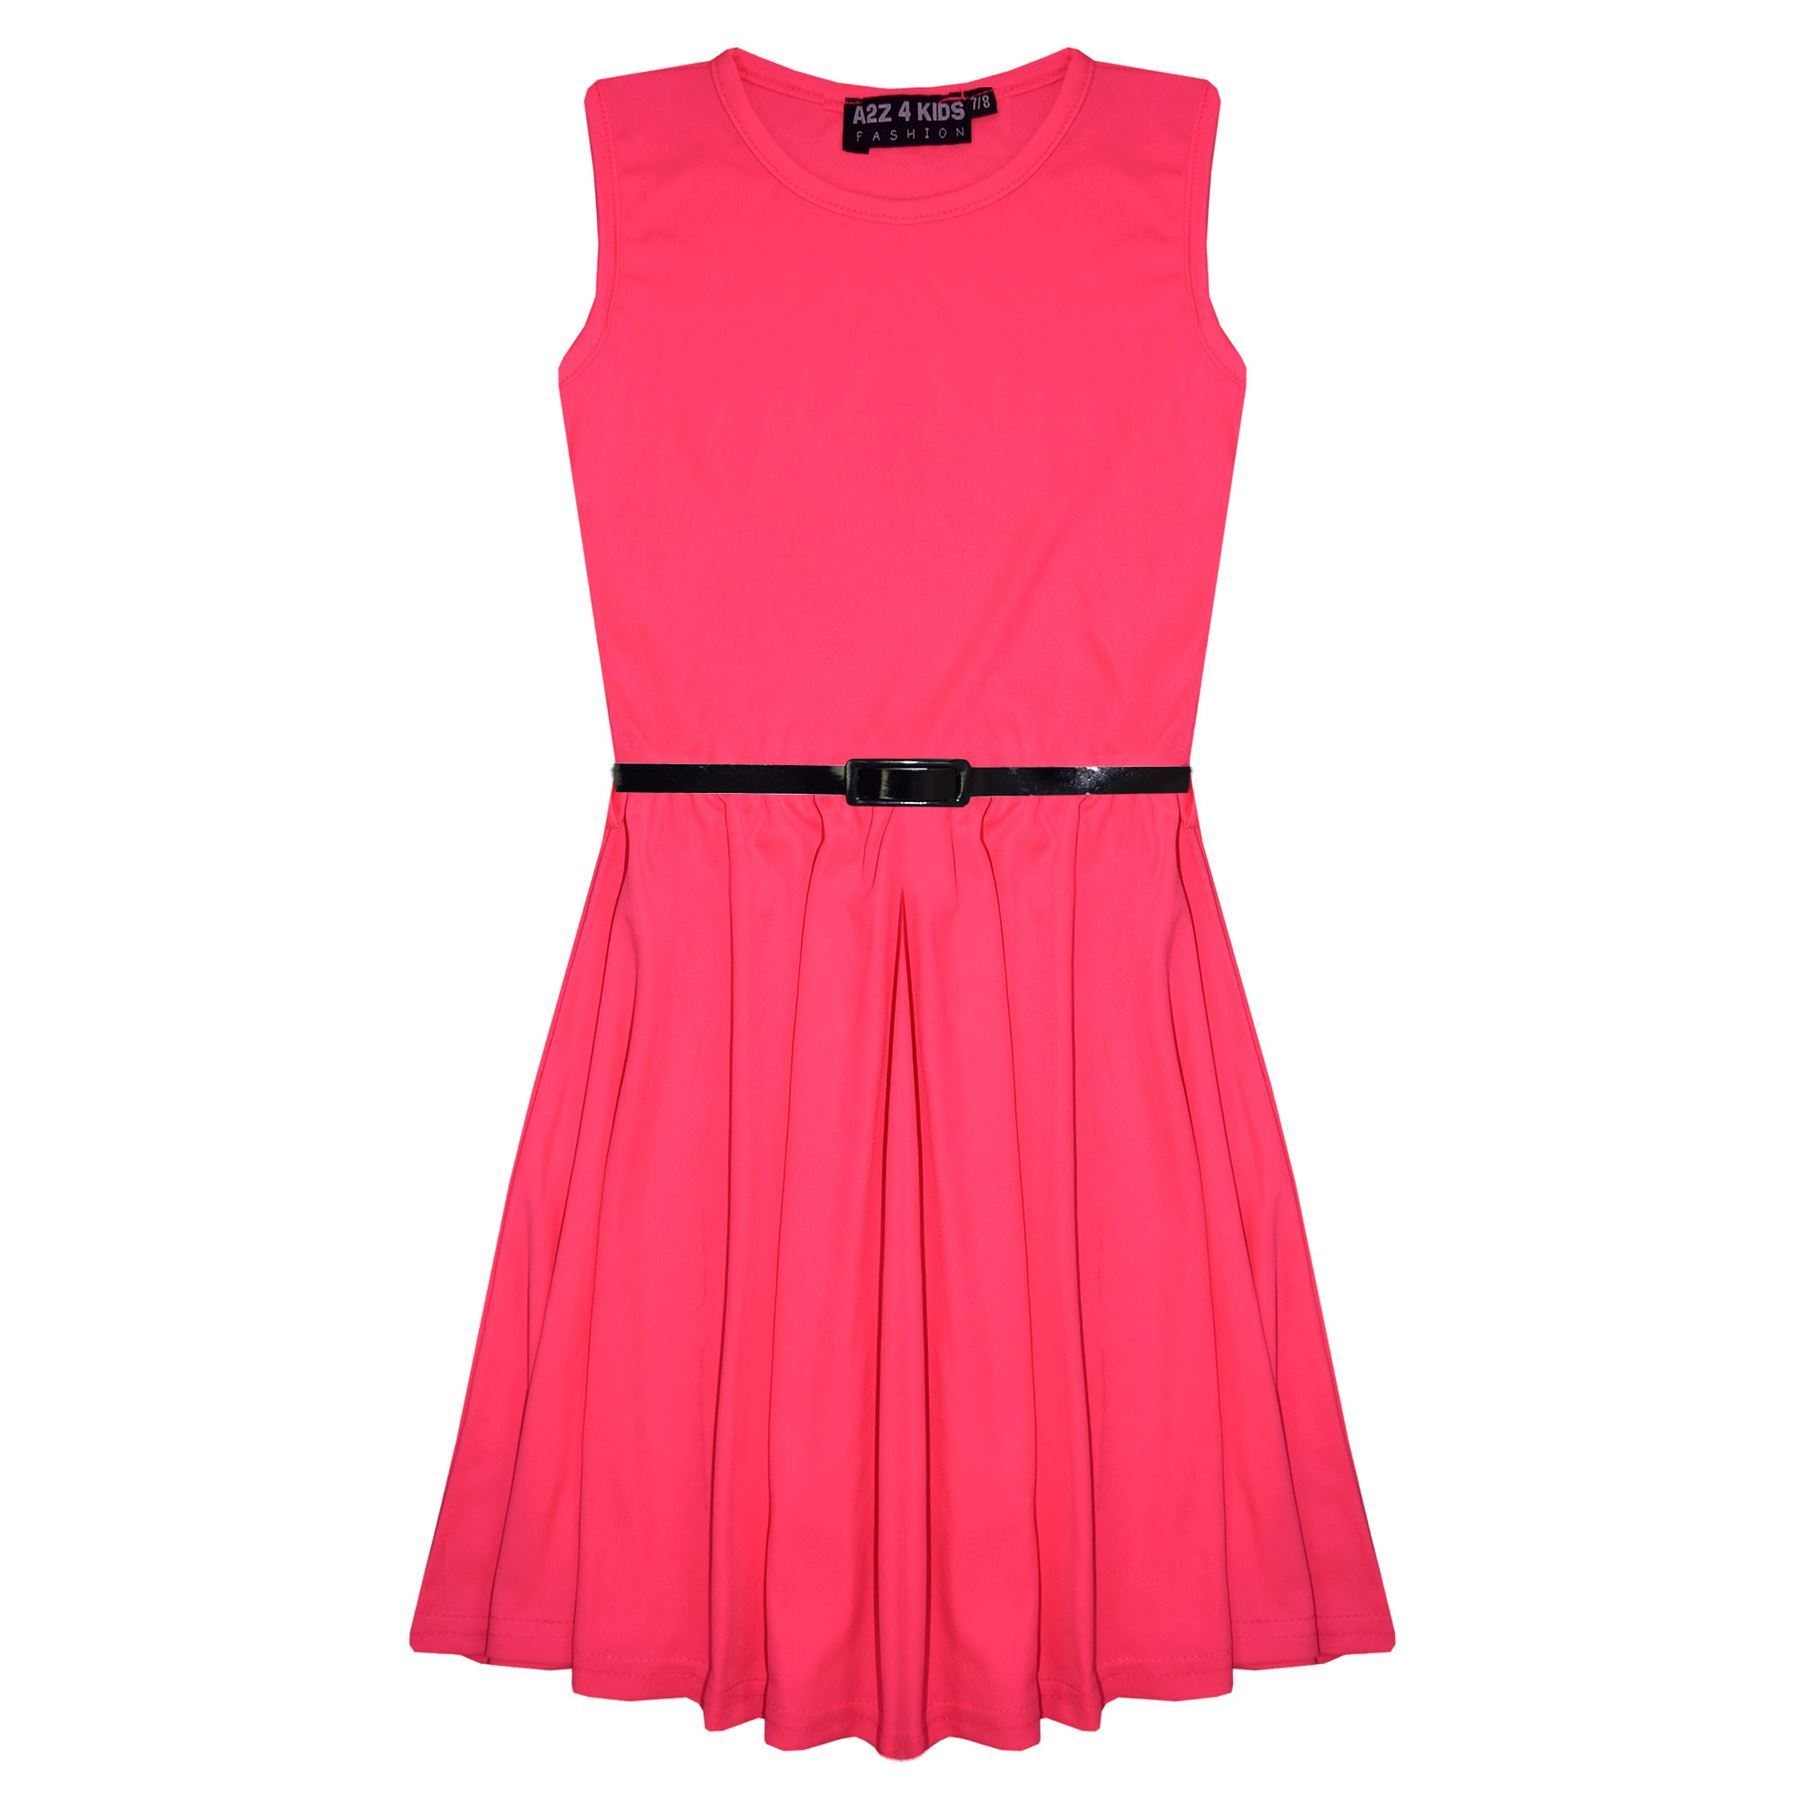 Girls-Skater-Dress-Kids-Party-Dresses-With-Free-Belt-5-6-7-8-9-10-11-12-13-Years thumbnail 56